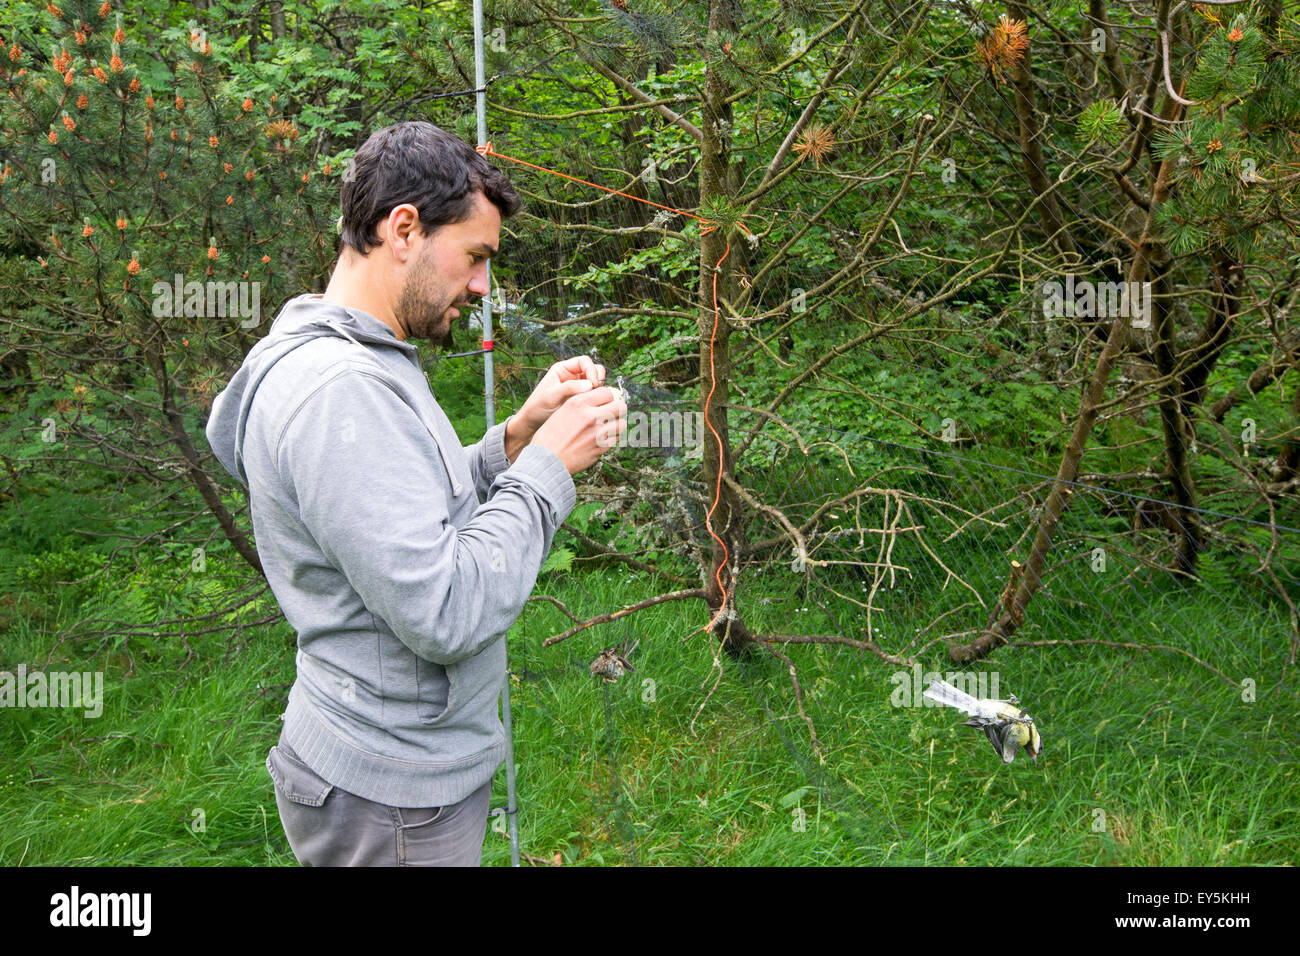 Passerine banding captured by net - Alsace France Bird Banding with nylon nets for STOC Program: Temporal Monitoring - Stock Image